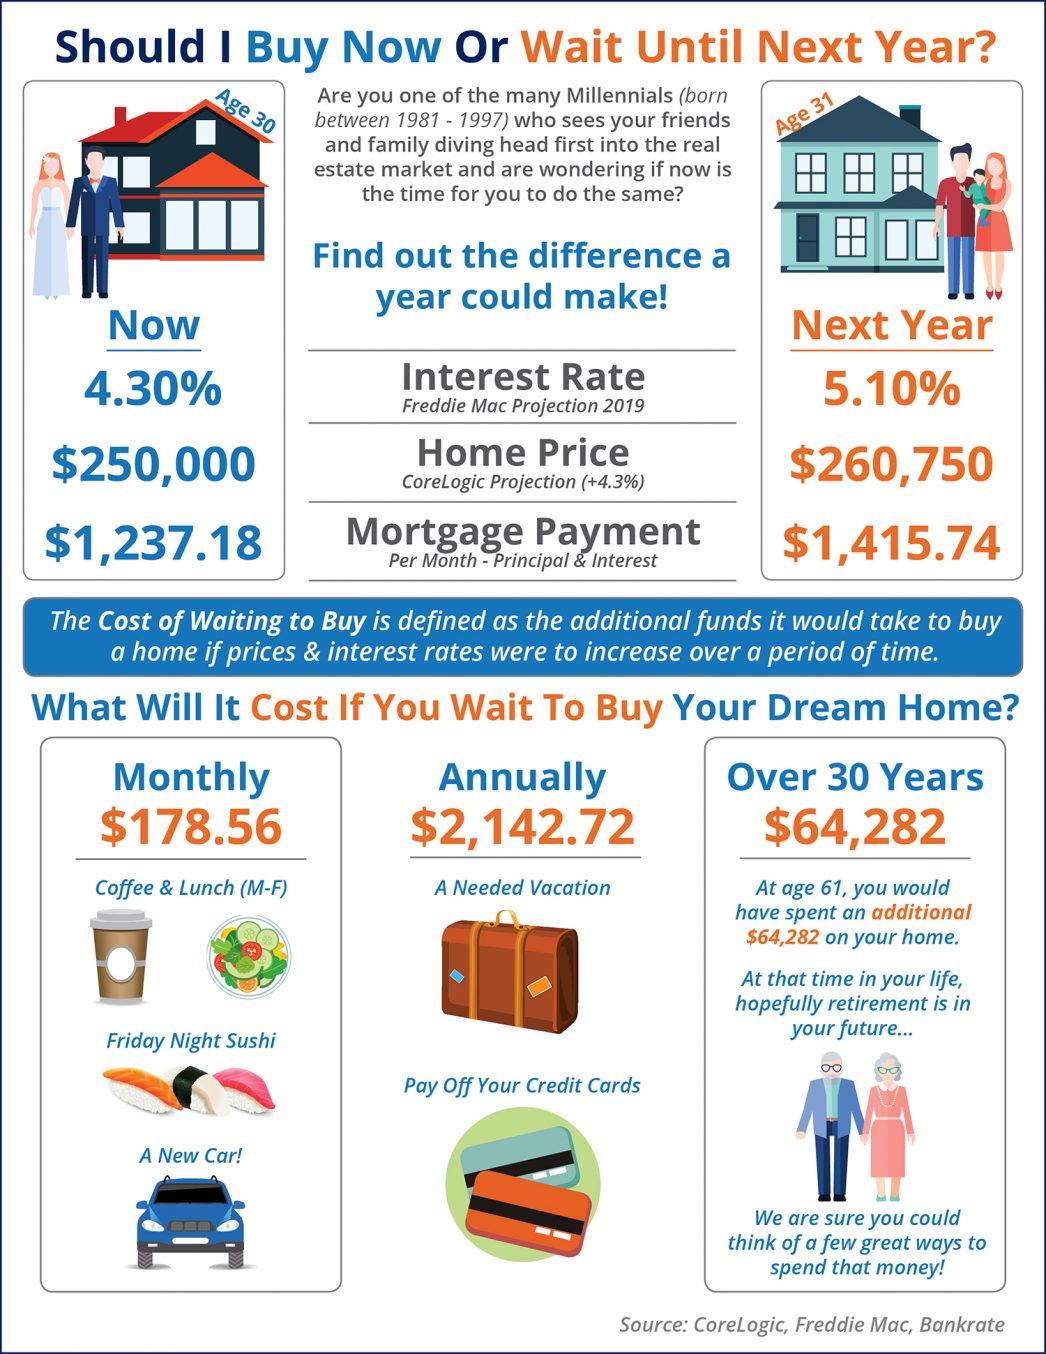 Should I Wait until next Year to Buy? Or Buy Now? [INFOGRAPHIC] | MyKCM